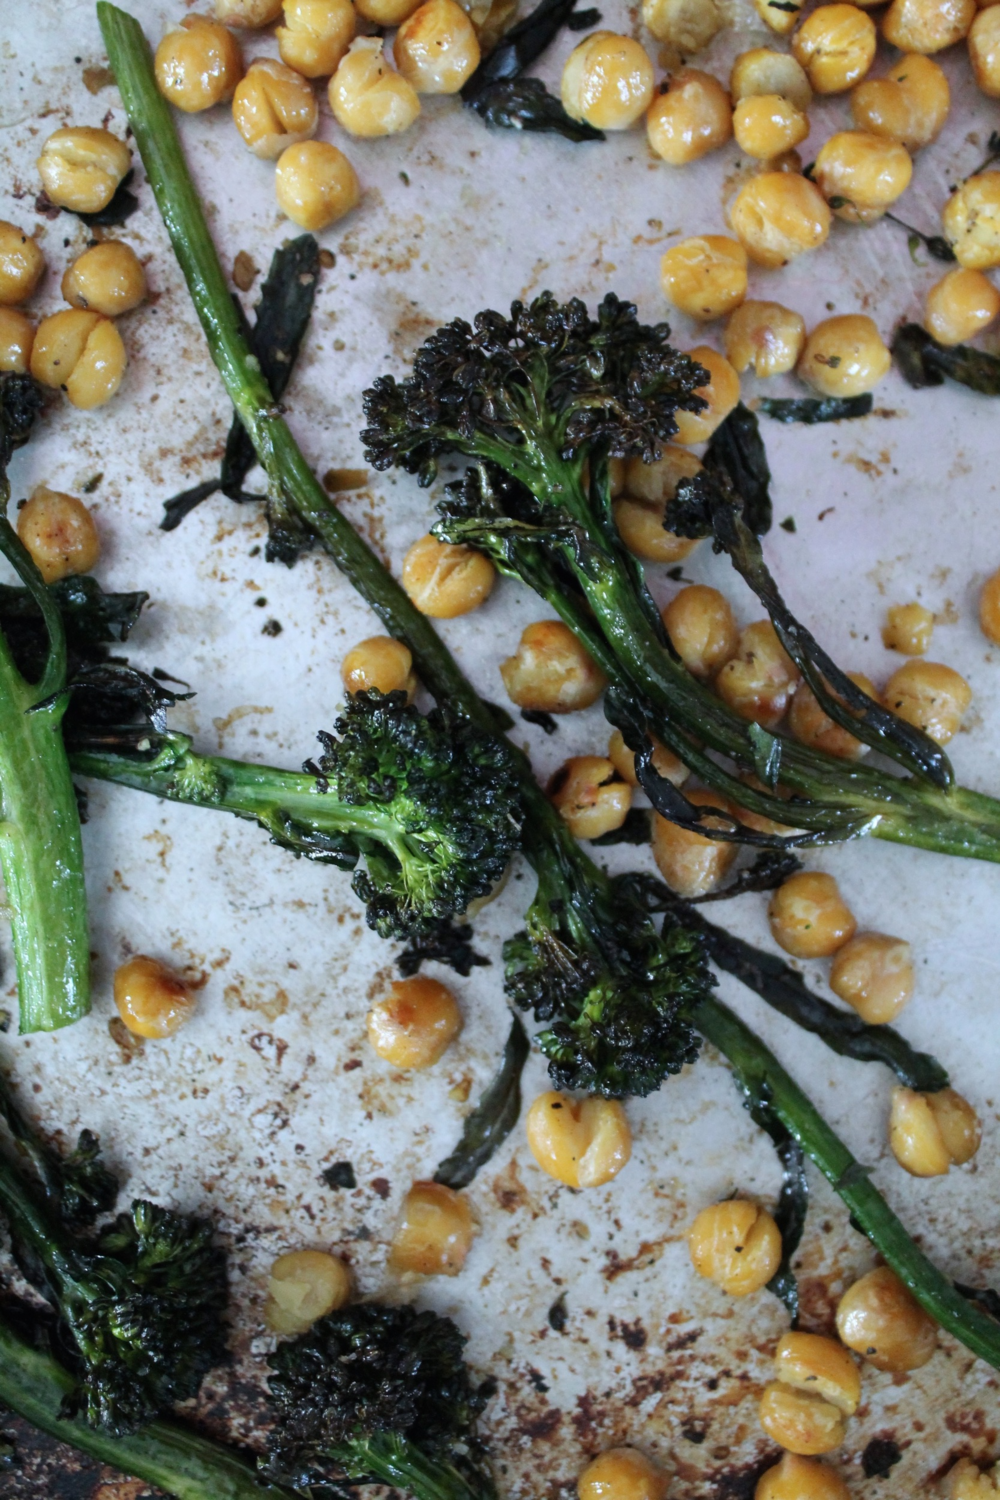 Roasted Broccoli + Chickpeas | www.hungryinlove.com